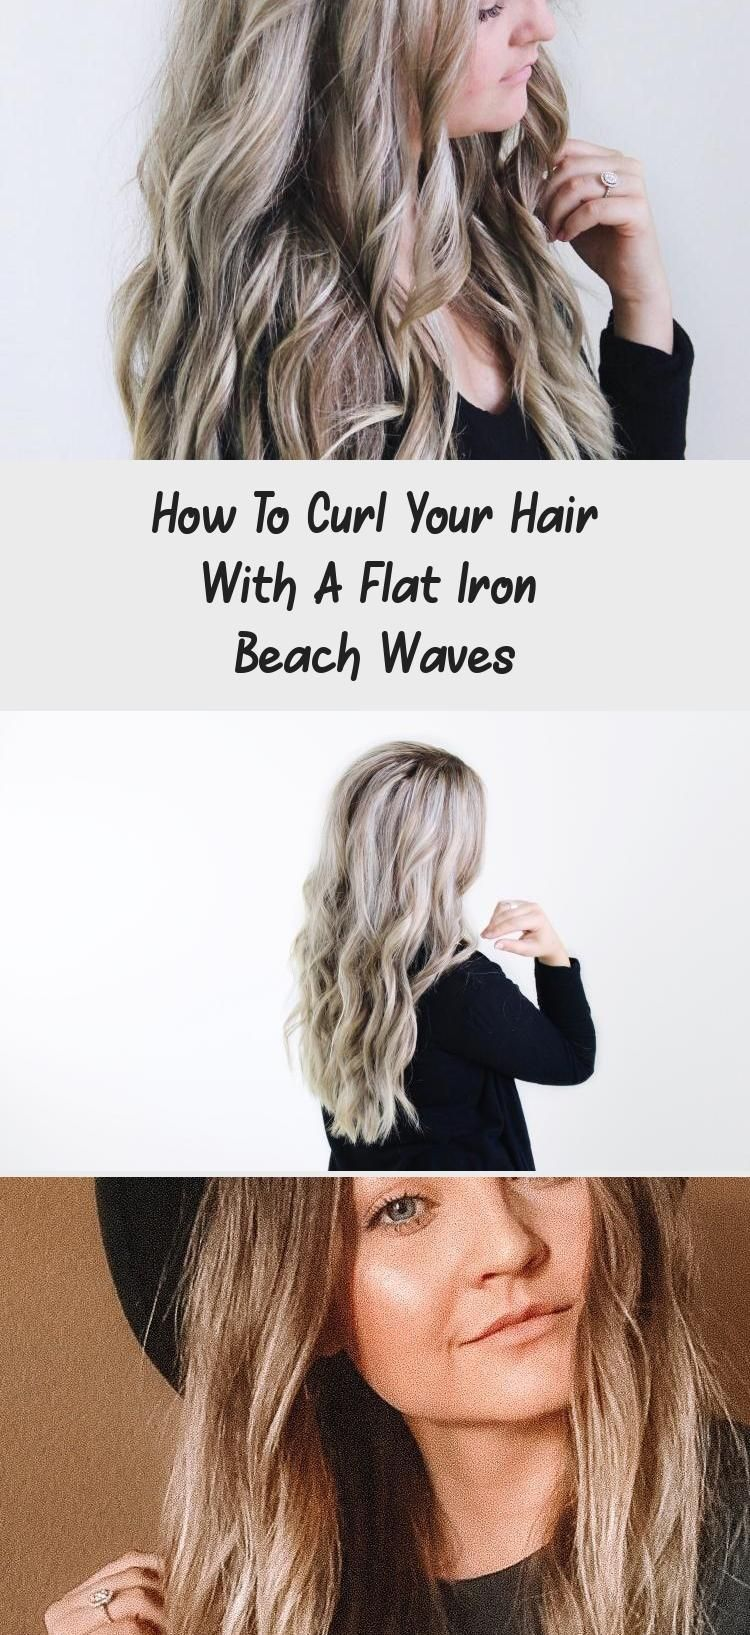 How To Curl Your Hair With A Flat Iron Make Big Curls Or Beach Waves Check Out This Super Easy How To Curl Your Hair Super Easy Hairstyles Curly Hair Styles